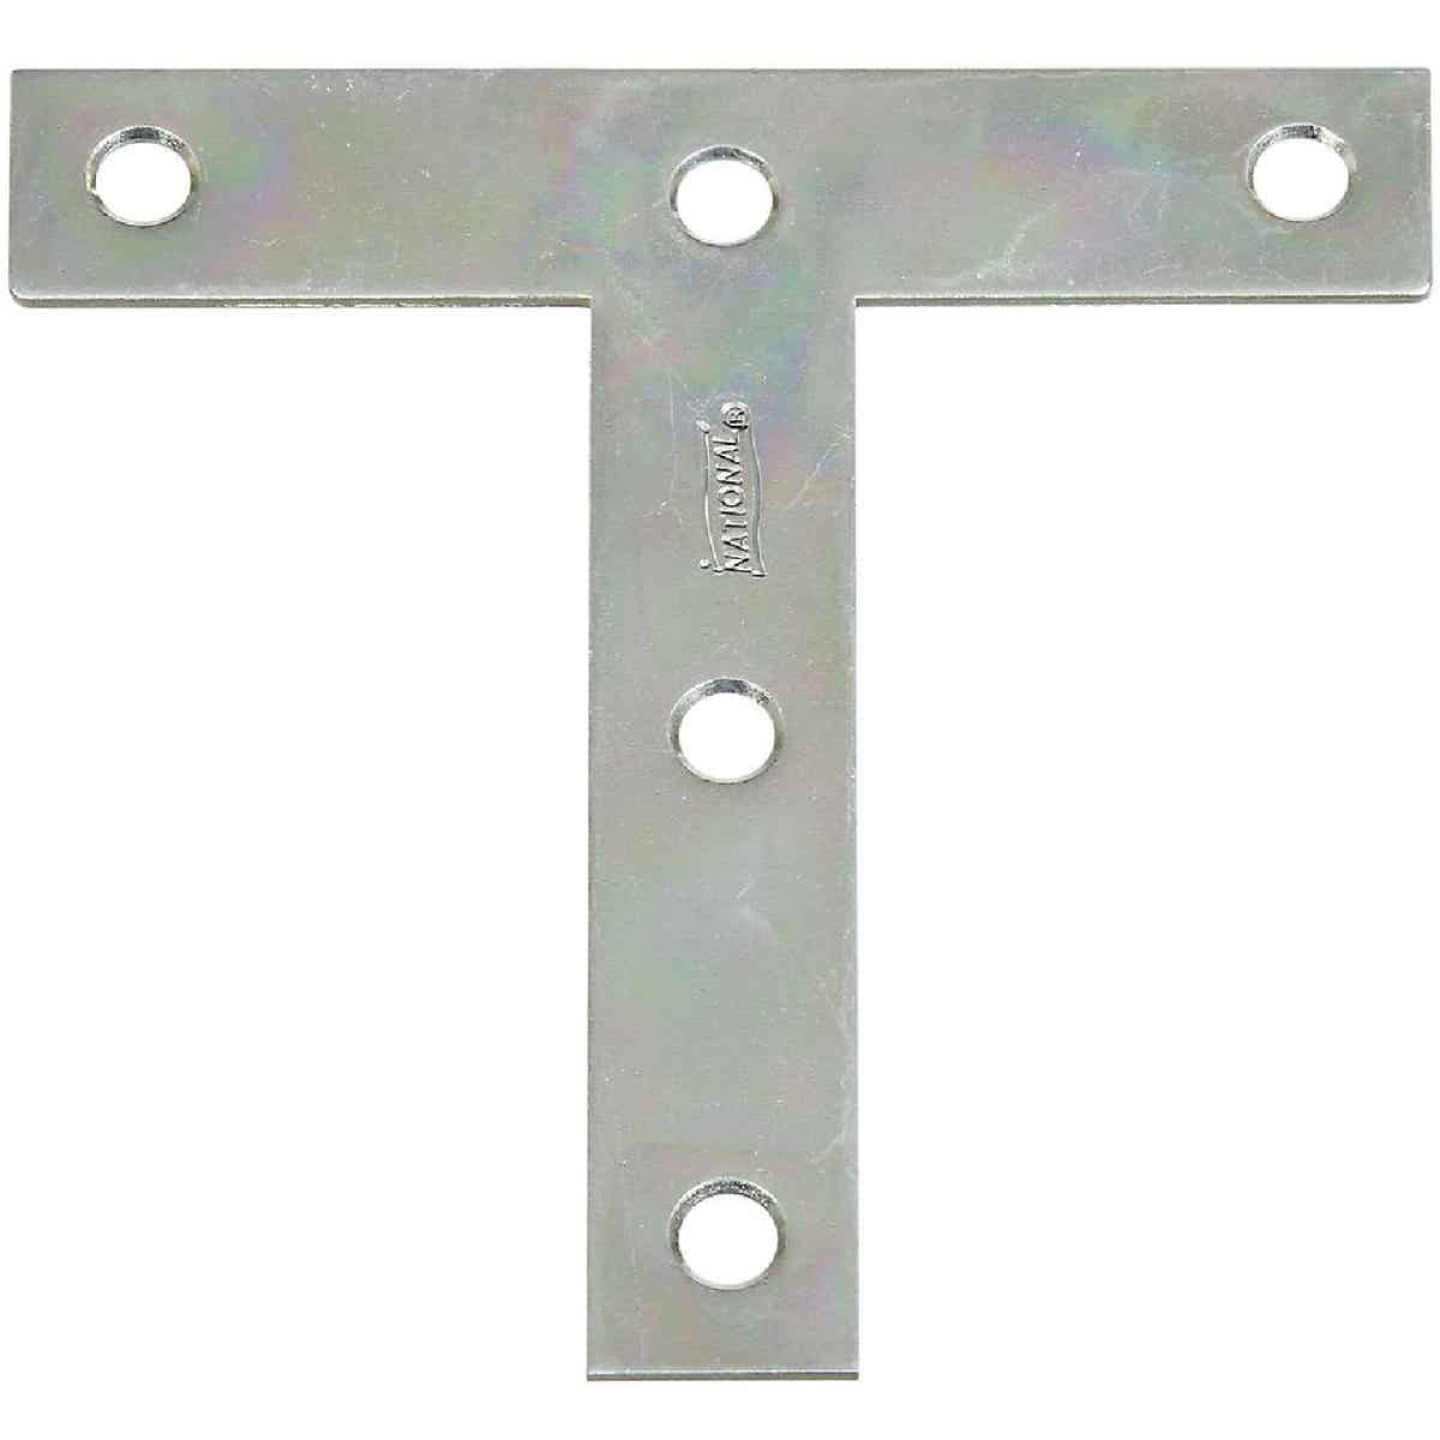 "National 4"" x 4"" Zinc T-Plate, (2-Pack) Image 1"